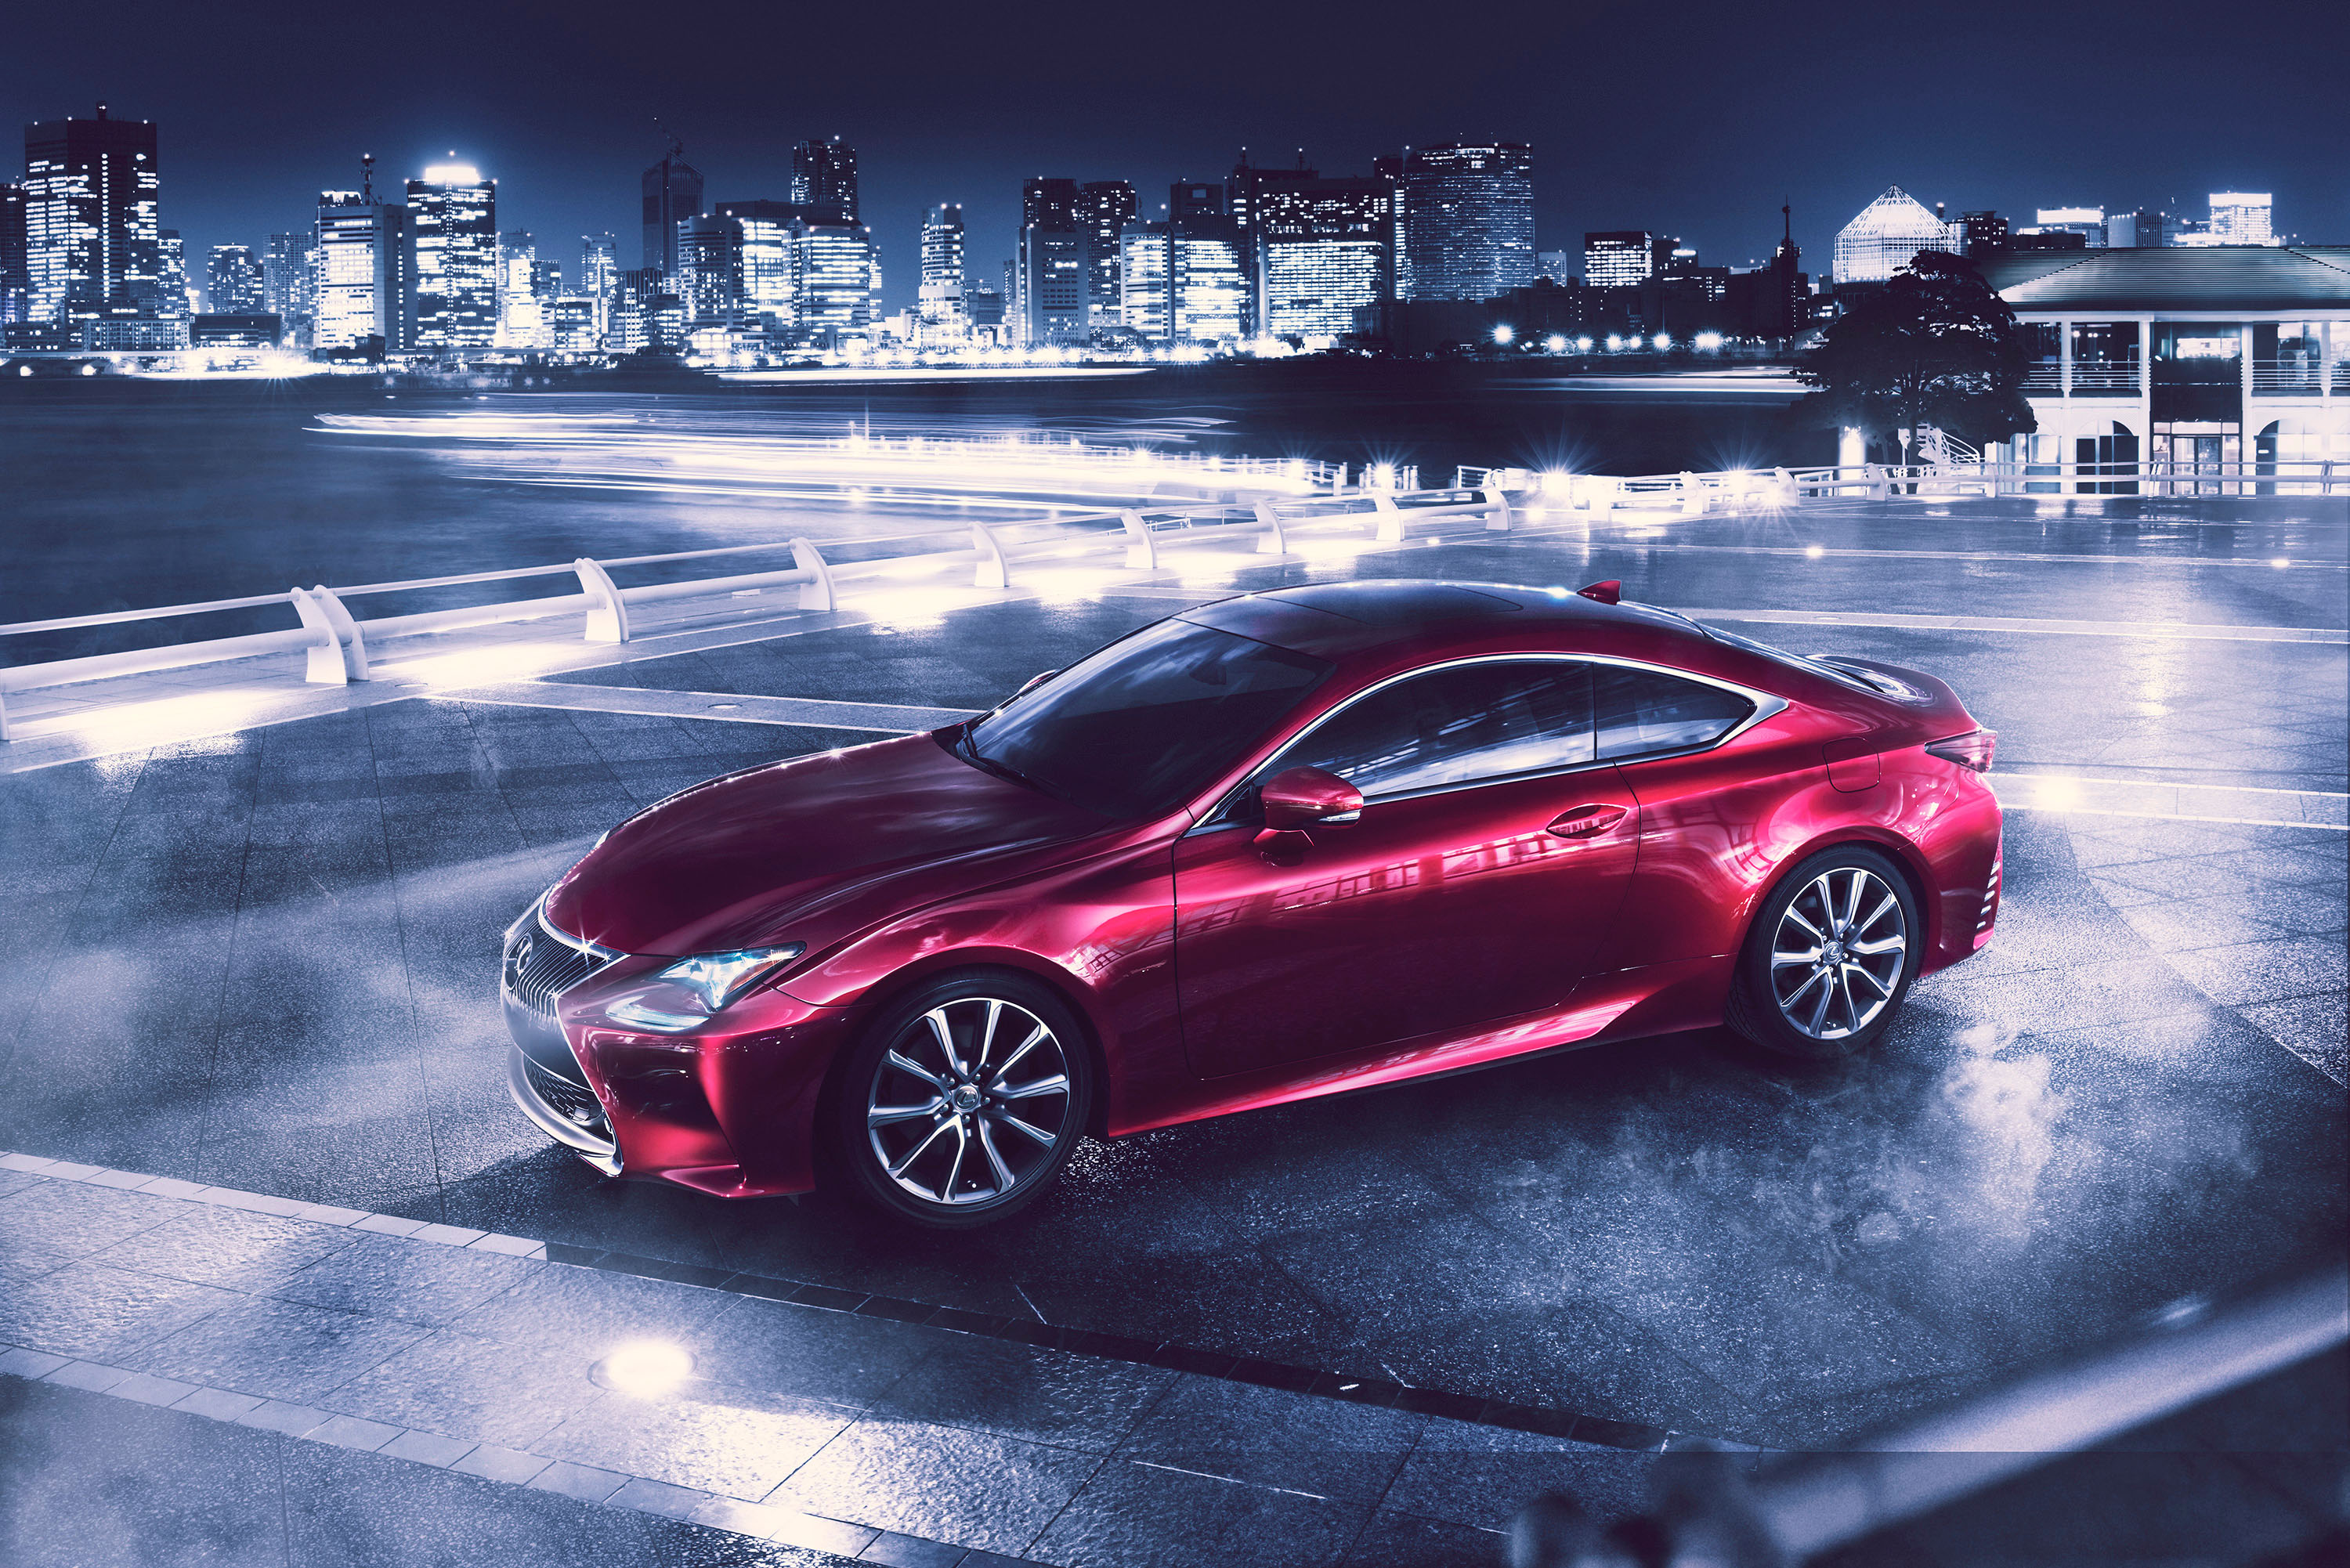 source: Toyota http://pressroom.lexus.com/releases/lexus+tokyo+motor+show+2013+rc+coupe.htm?view_id=30347